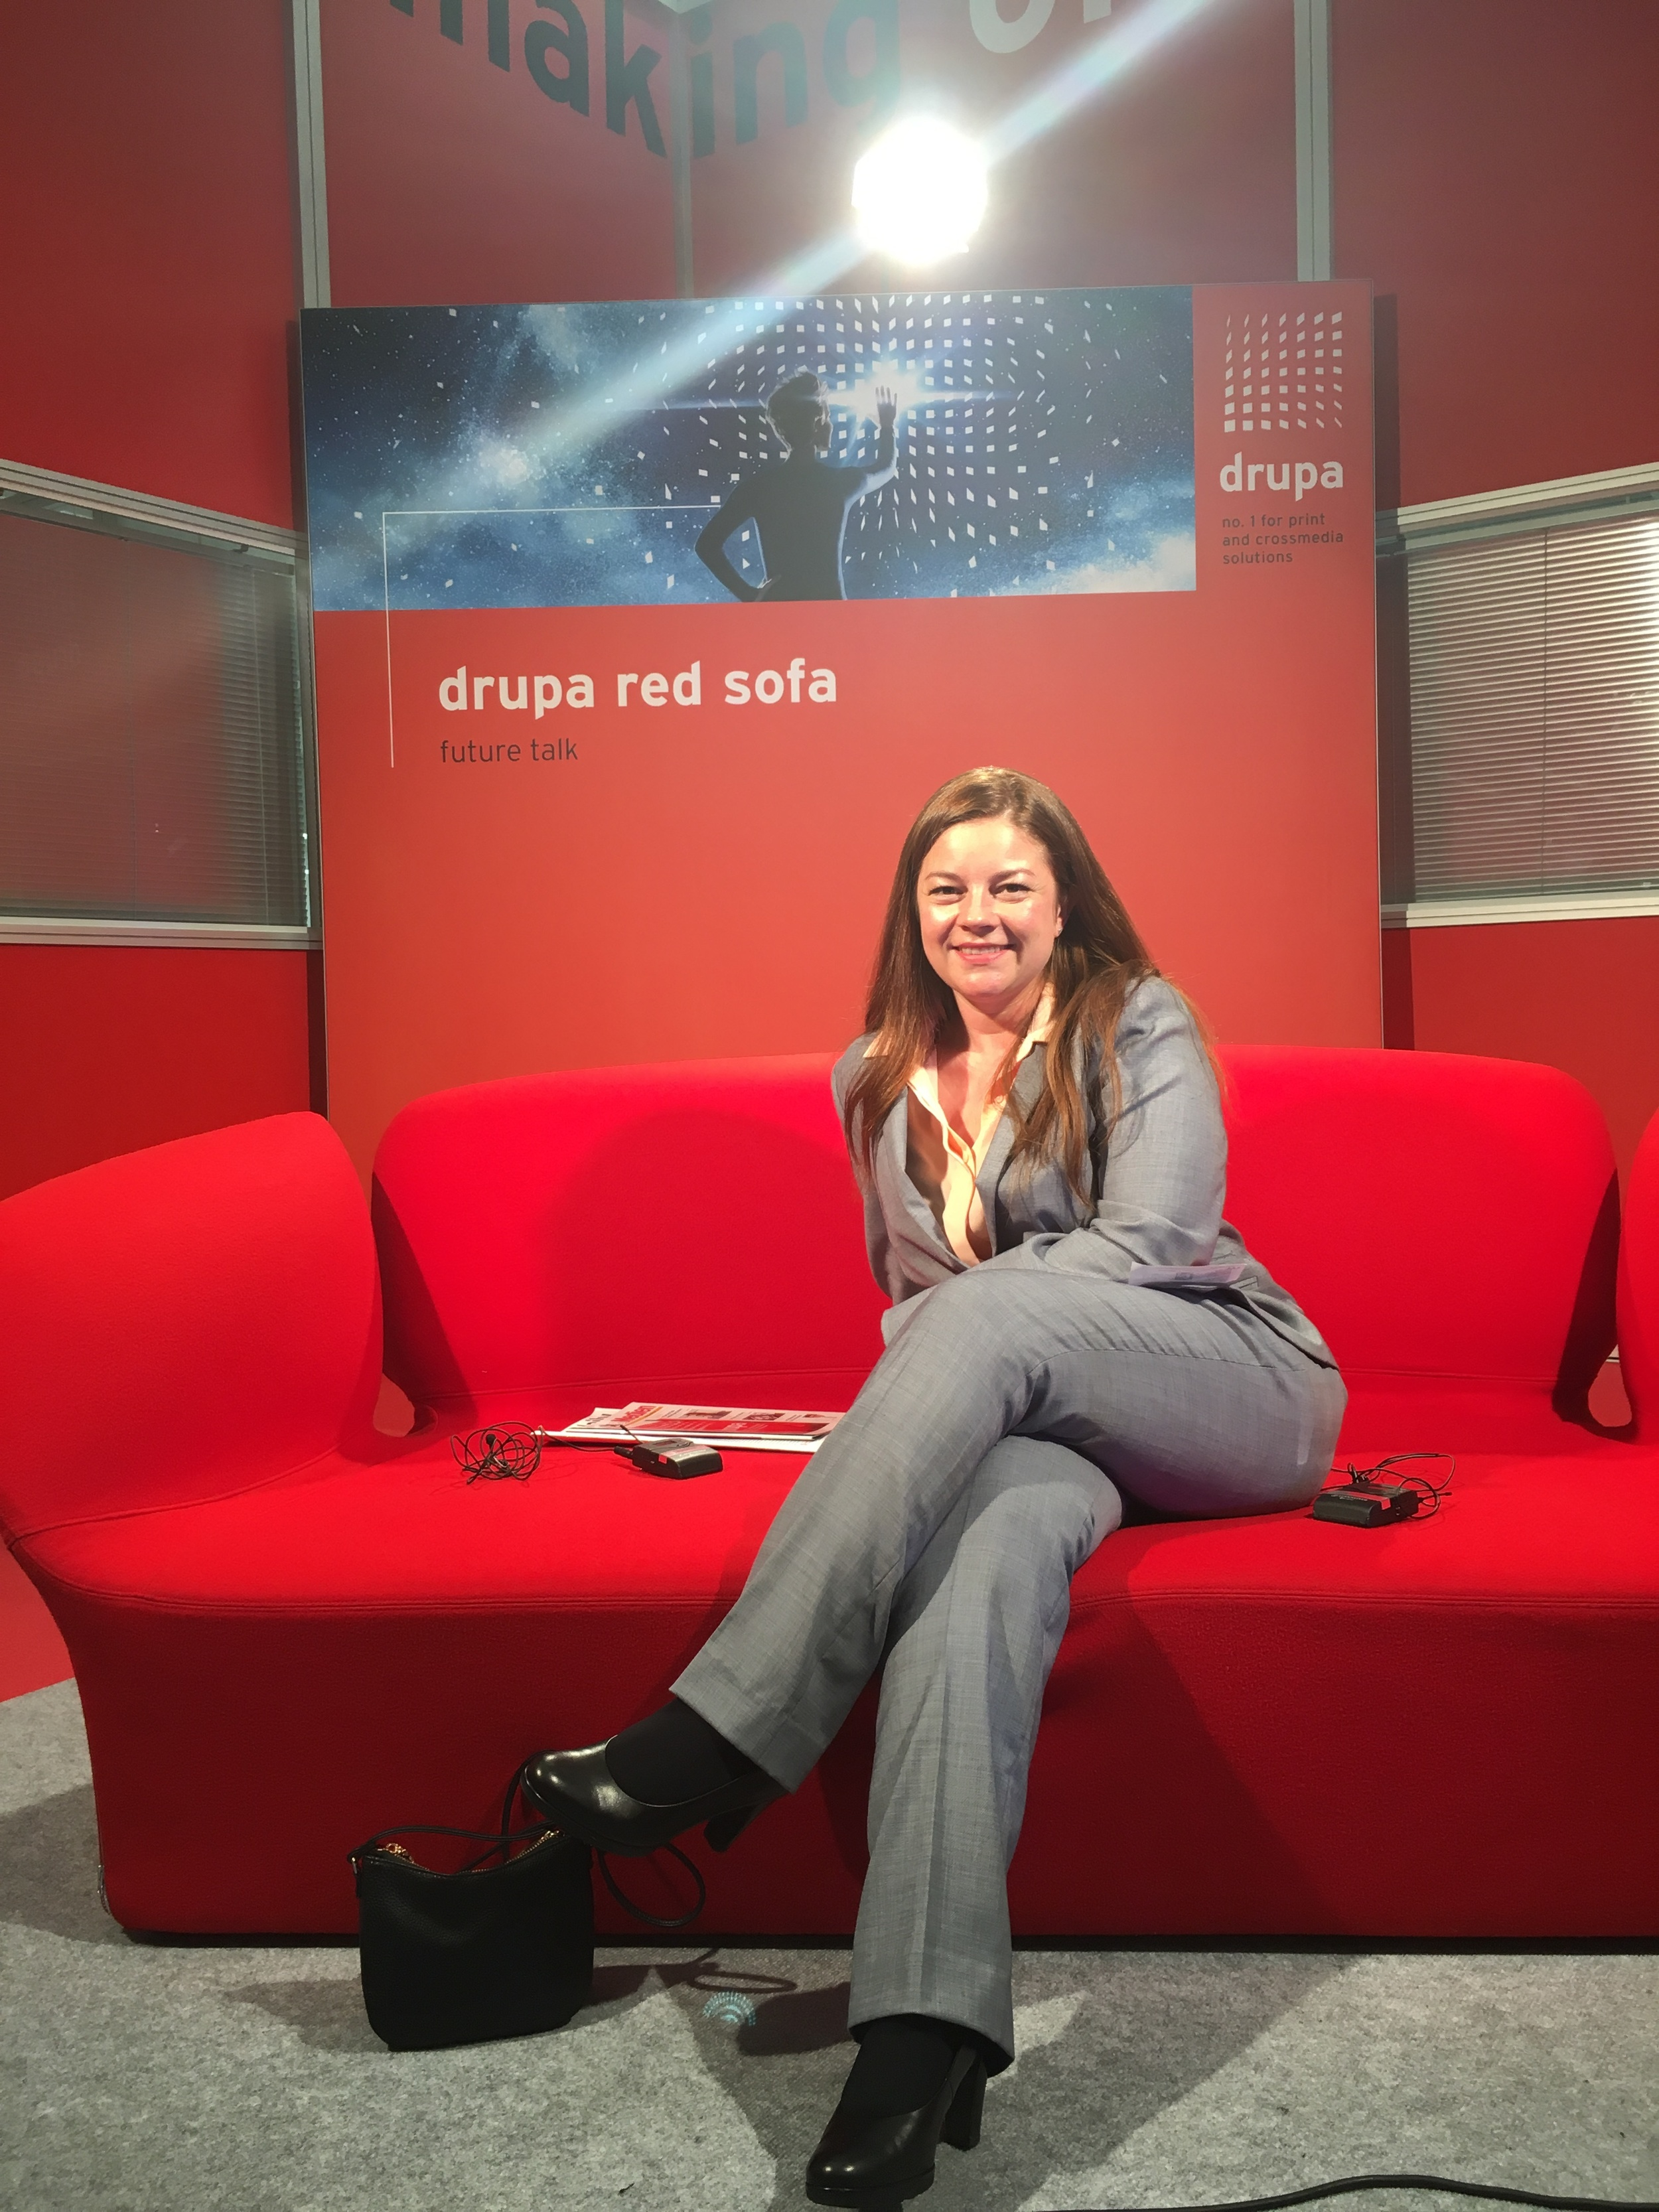 No one on the #drupa2016 red sofa couch? I couldn't resist. Thanks for letting me hijack it guys!